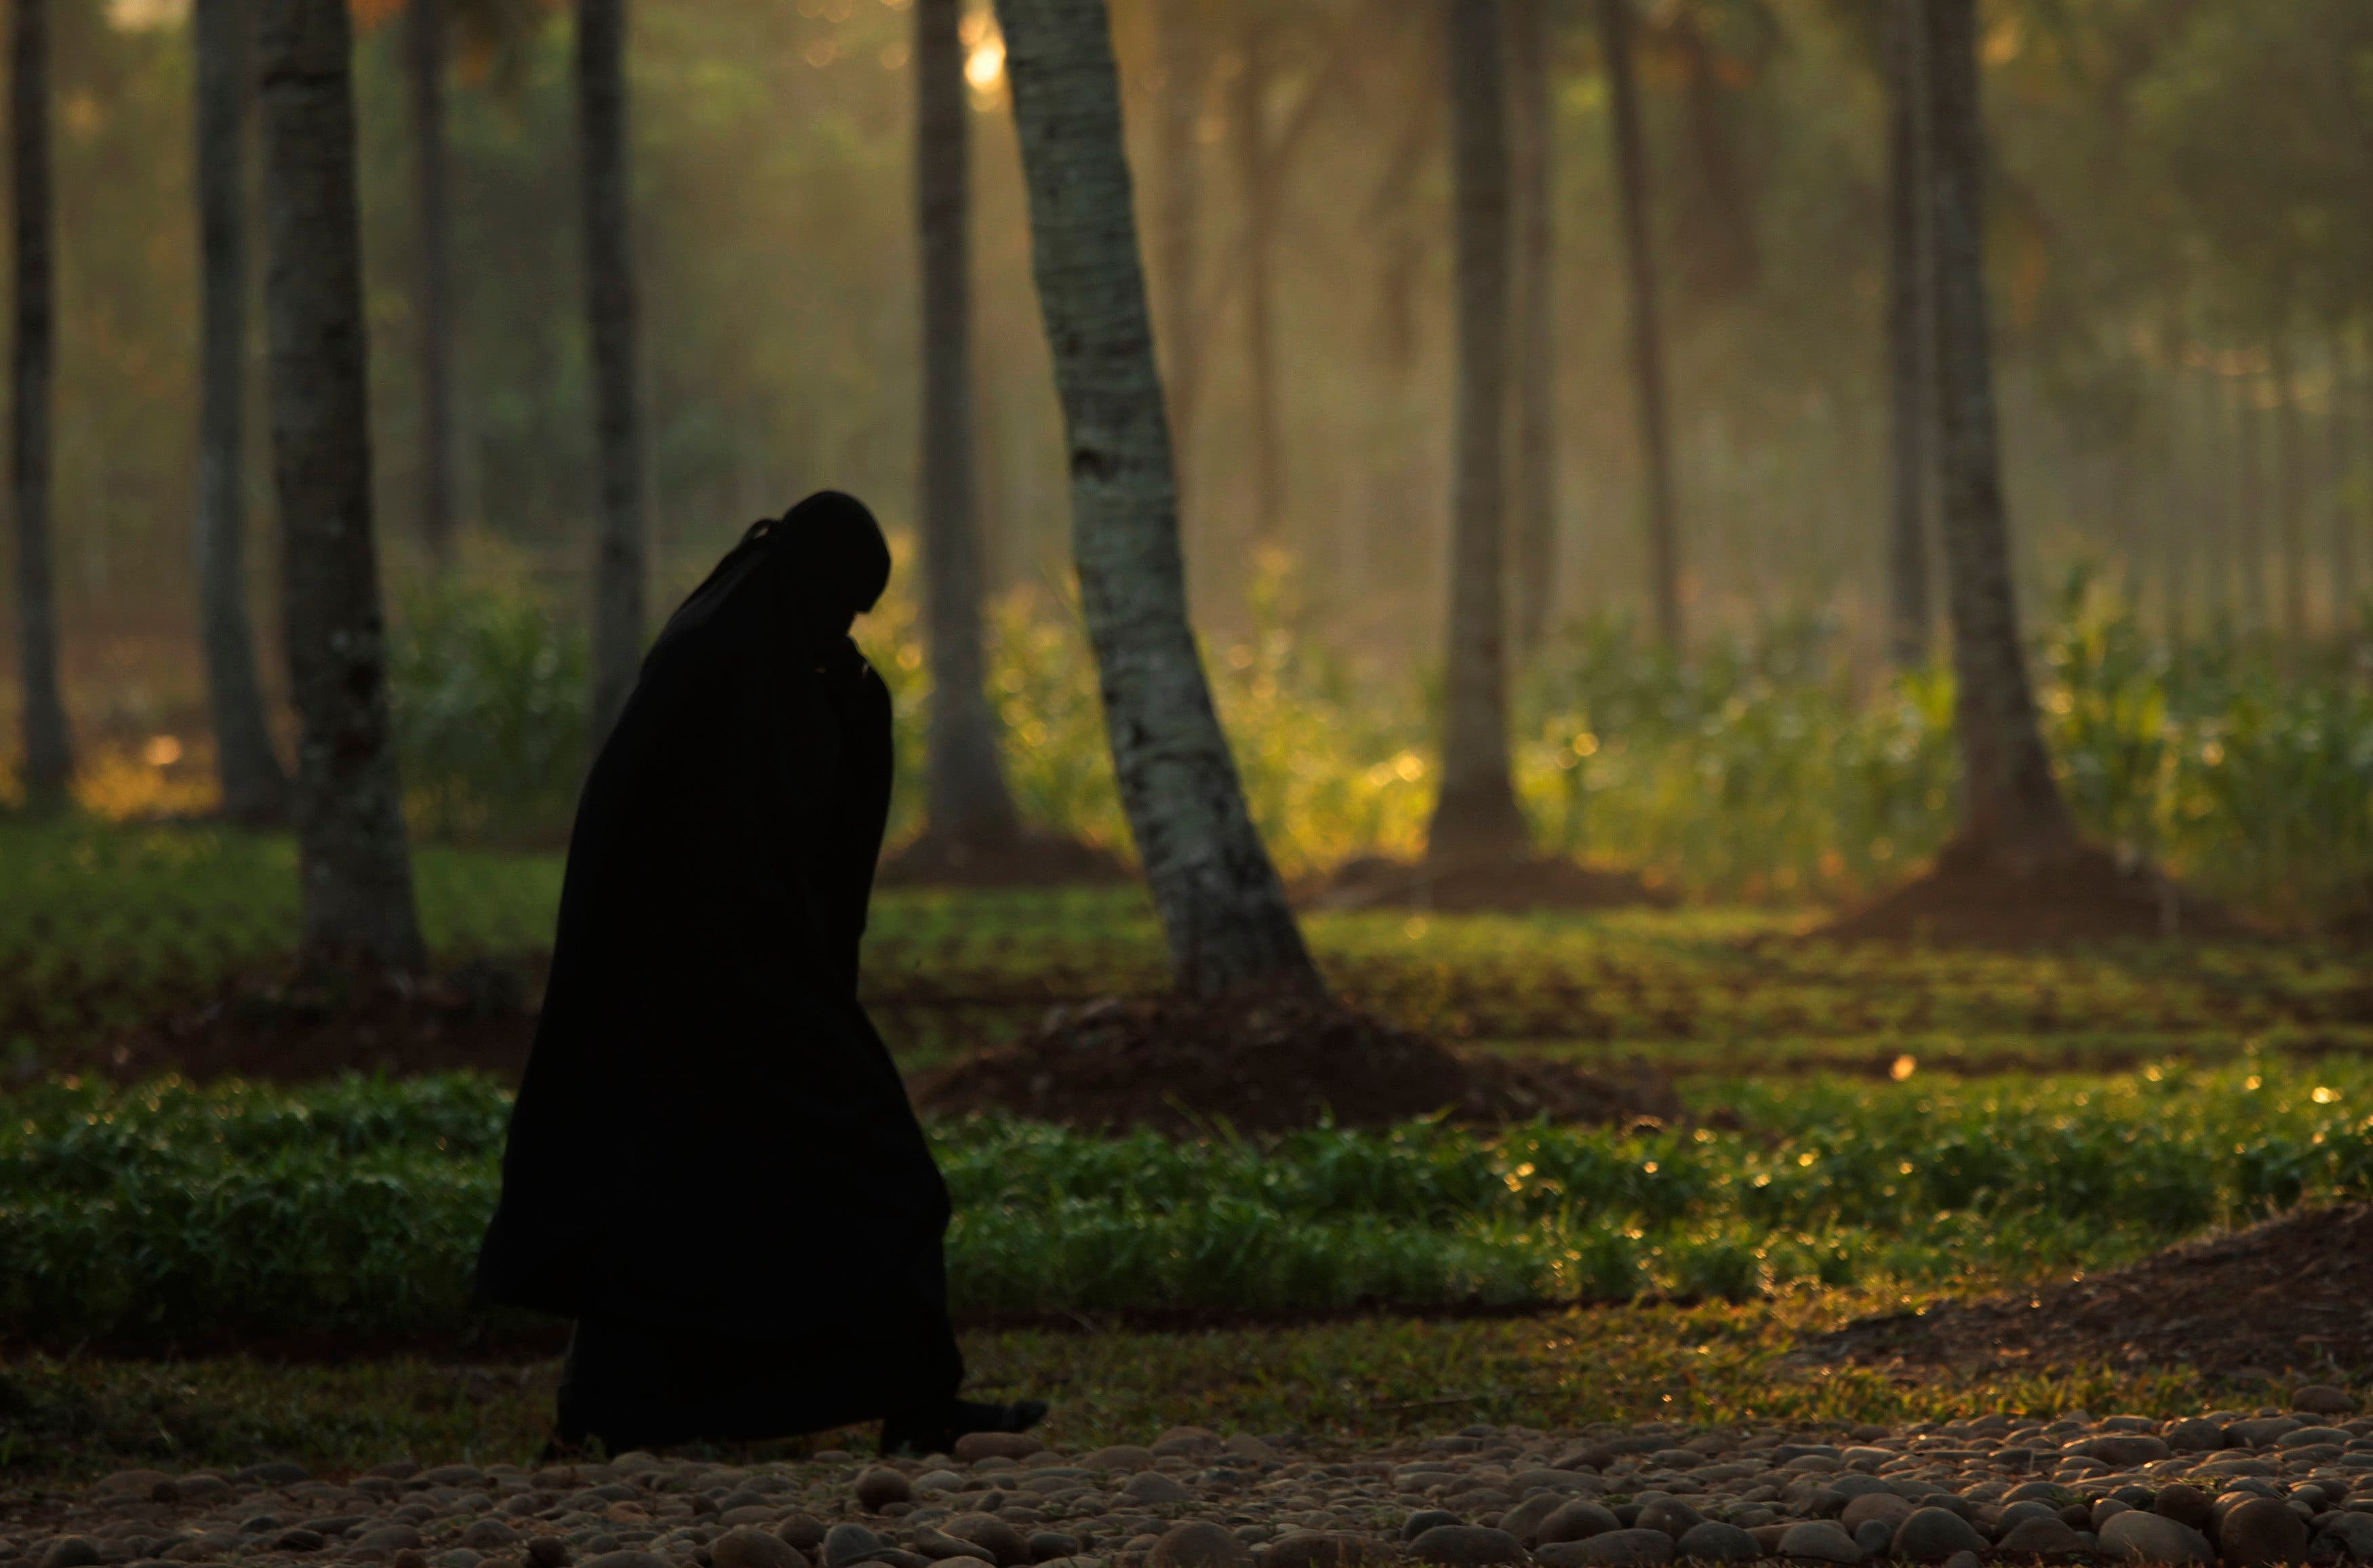 INDONESIA: A woman from the Islamic sect An-Nadzir walks to an Eid al-Adha mass prayer at Mawang Lake in Gowa regency, Indonesia's South Sulawesi Province, October 14, 2013. (Reuters)